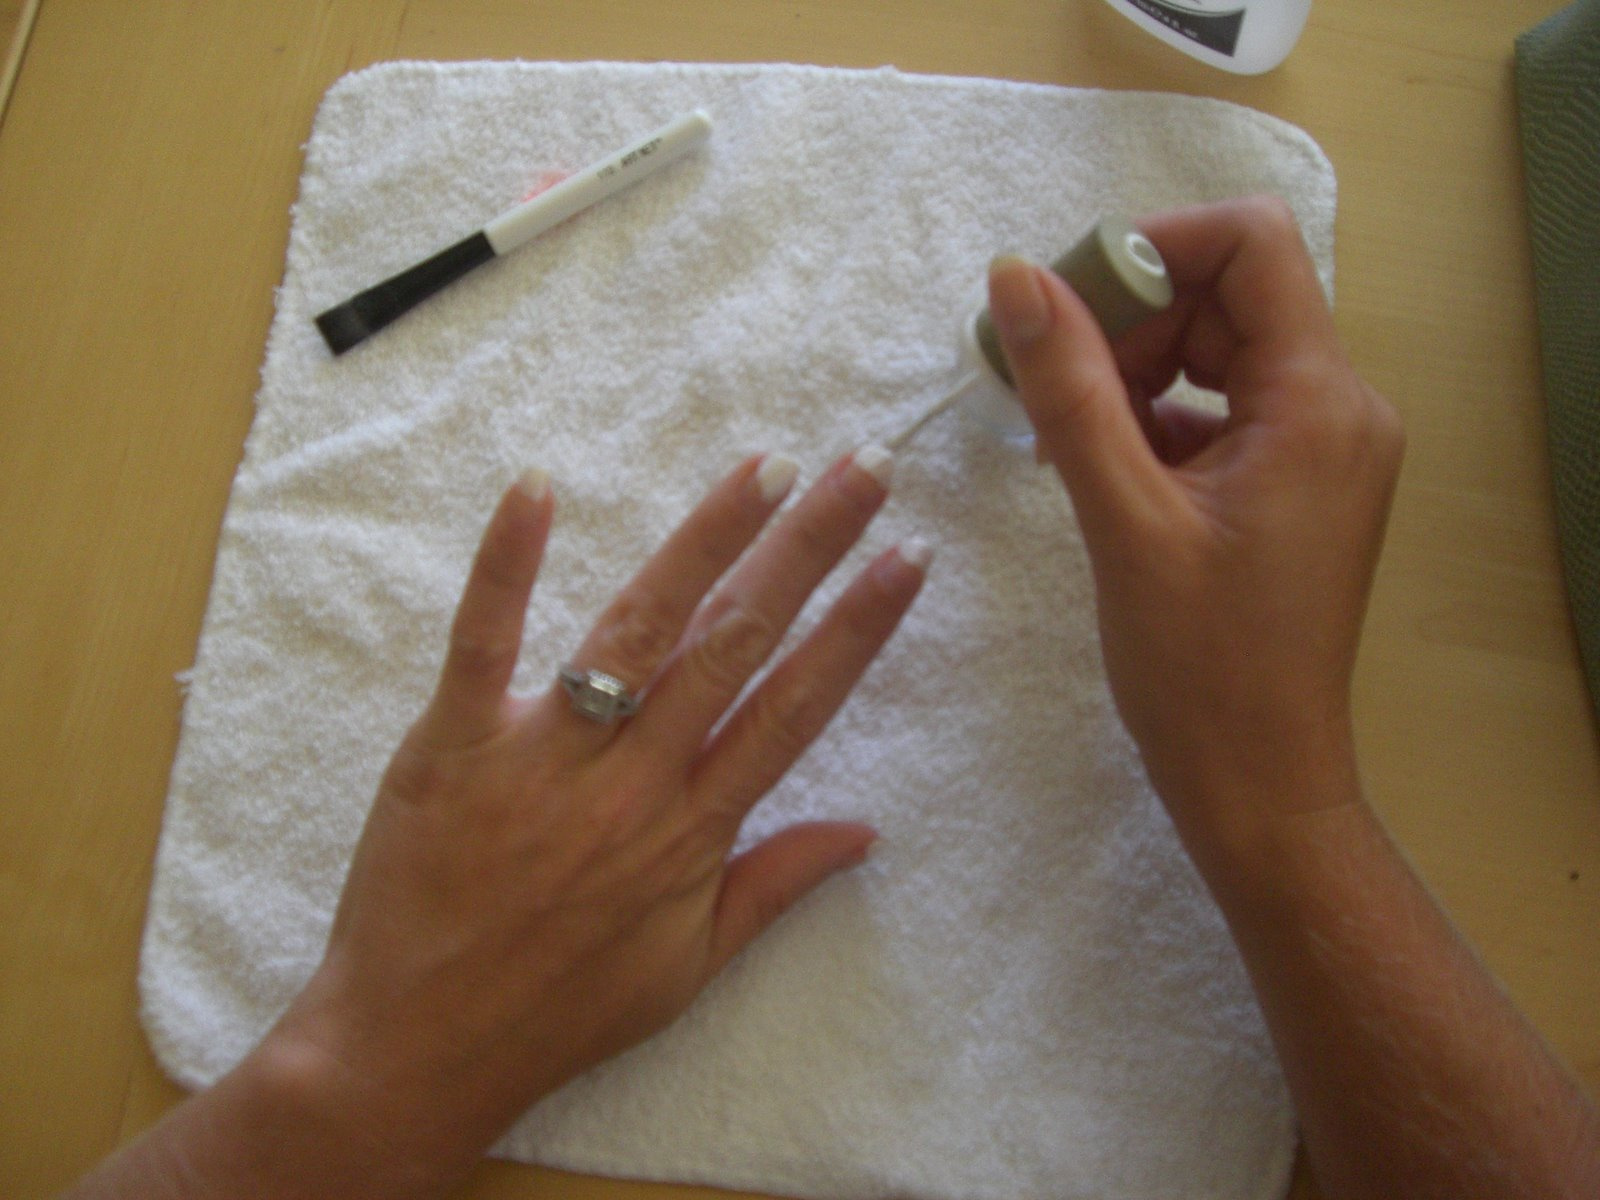 Do it yourself french manicure brittany herself curvy girl guide 2 brush a layer of white onto the tip of each nail if needed add a second coat solutioingenieria Gallery